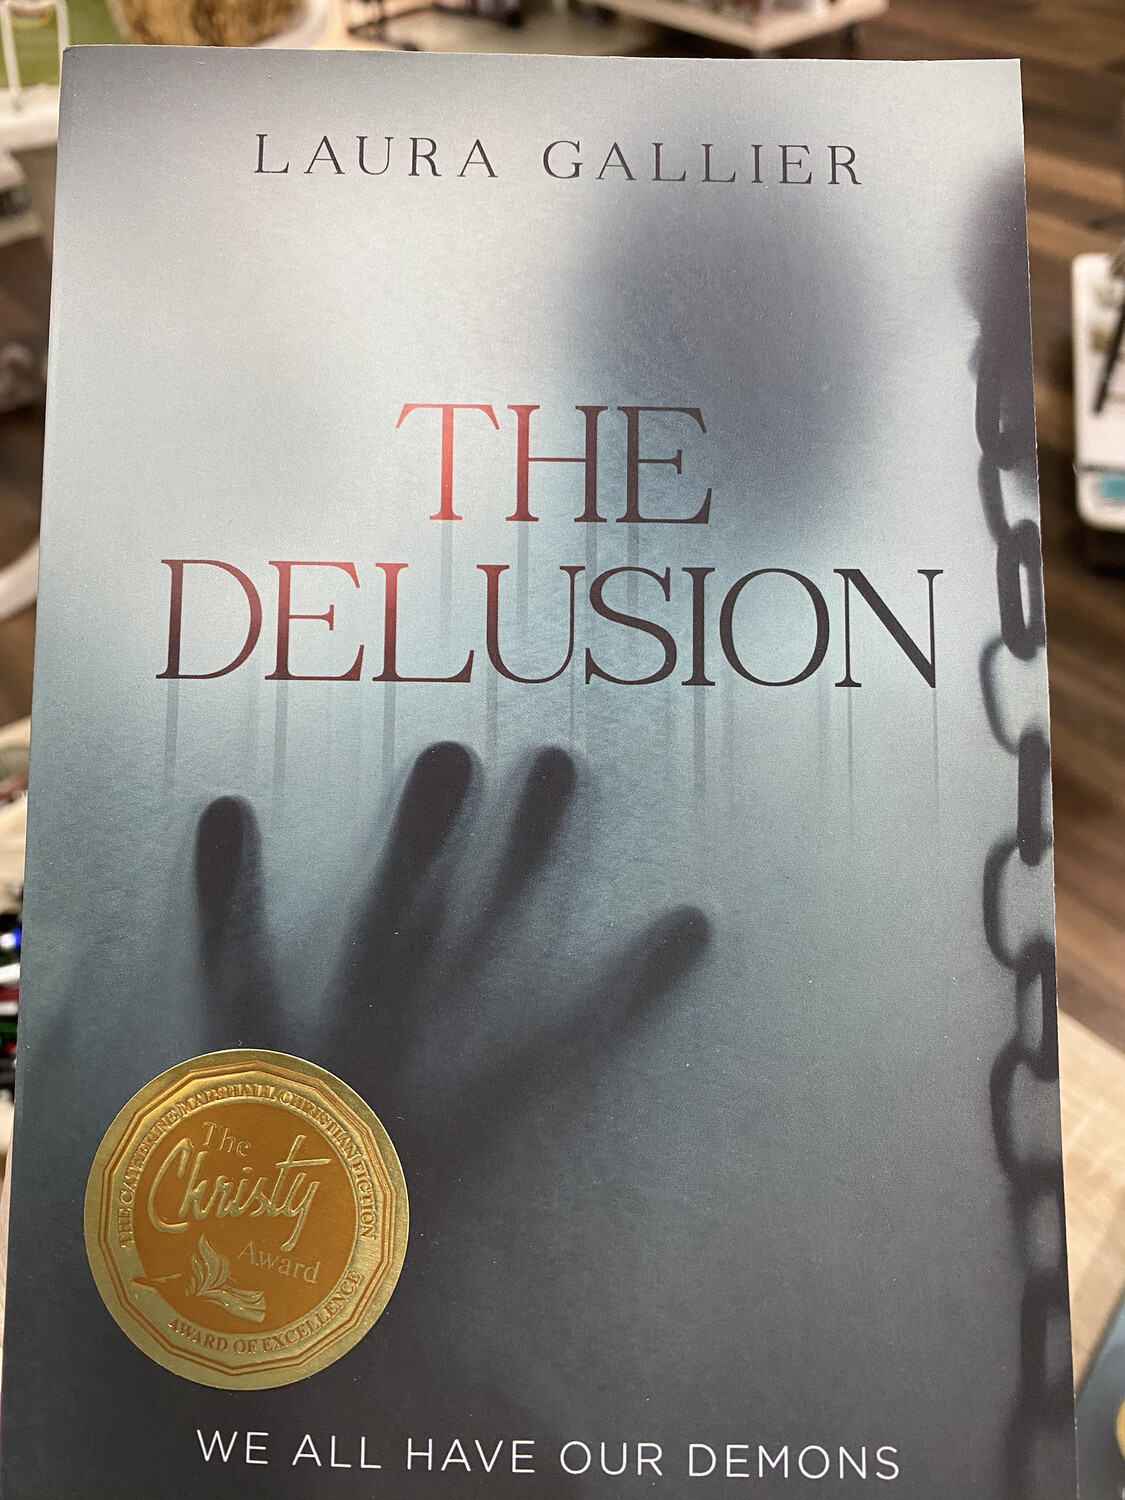 GALLIER, The Delusion, Book 1